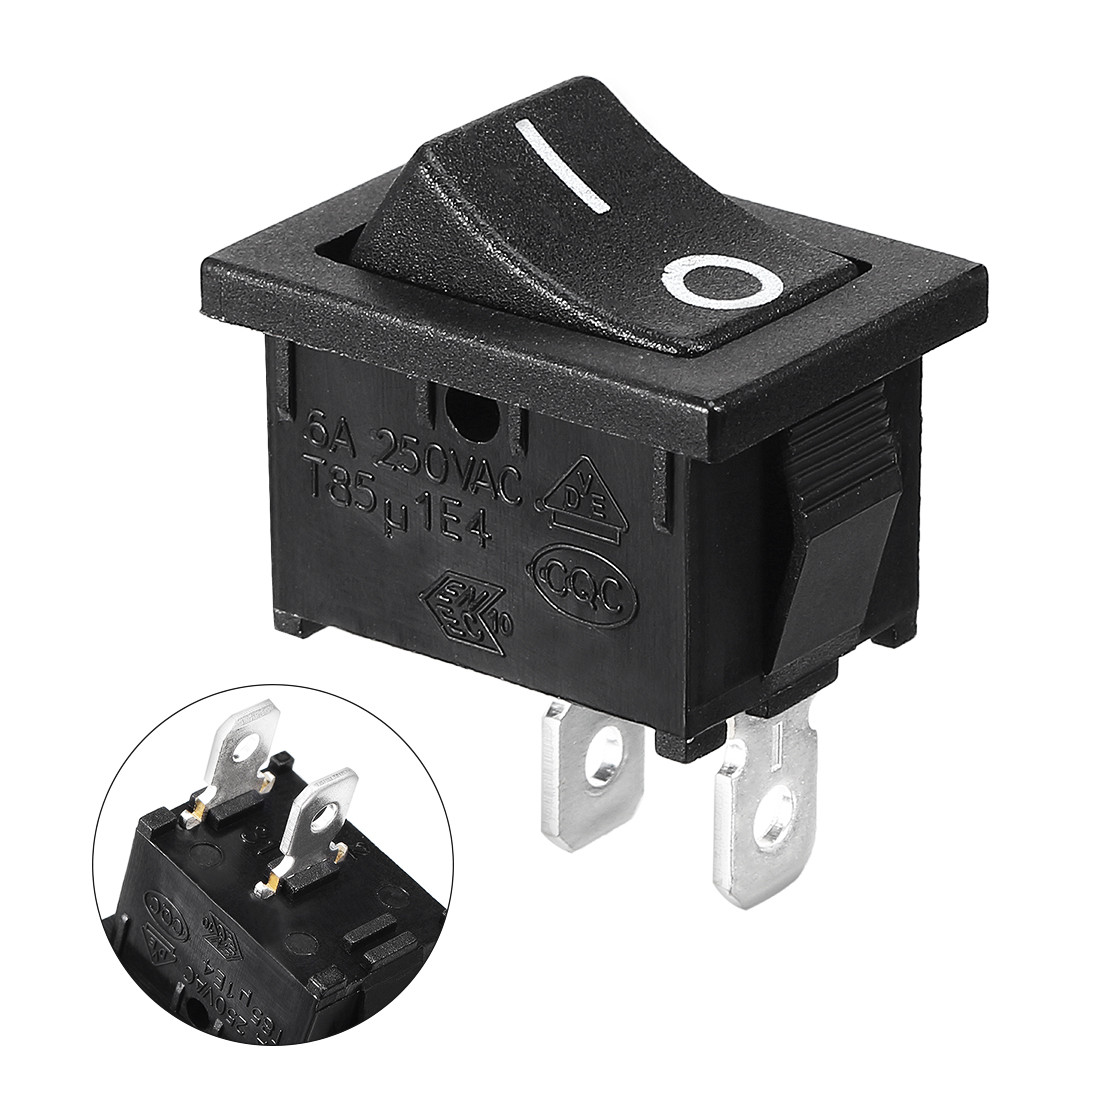 AC 10A/125V 6A/250V ON-OFF I/O 2 Position SPST 2 Pin Snap In Rocker Switch Black